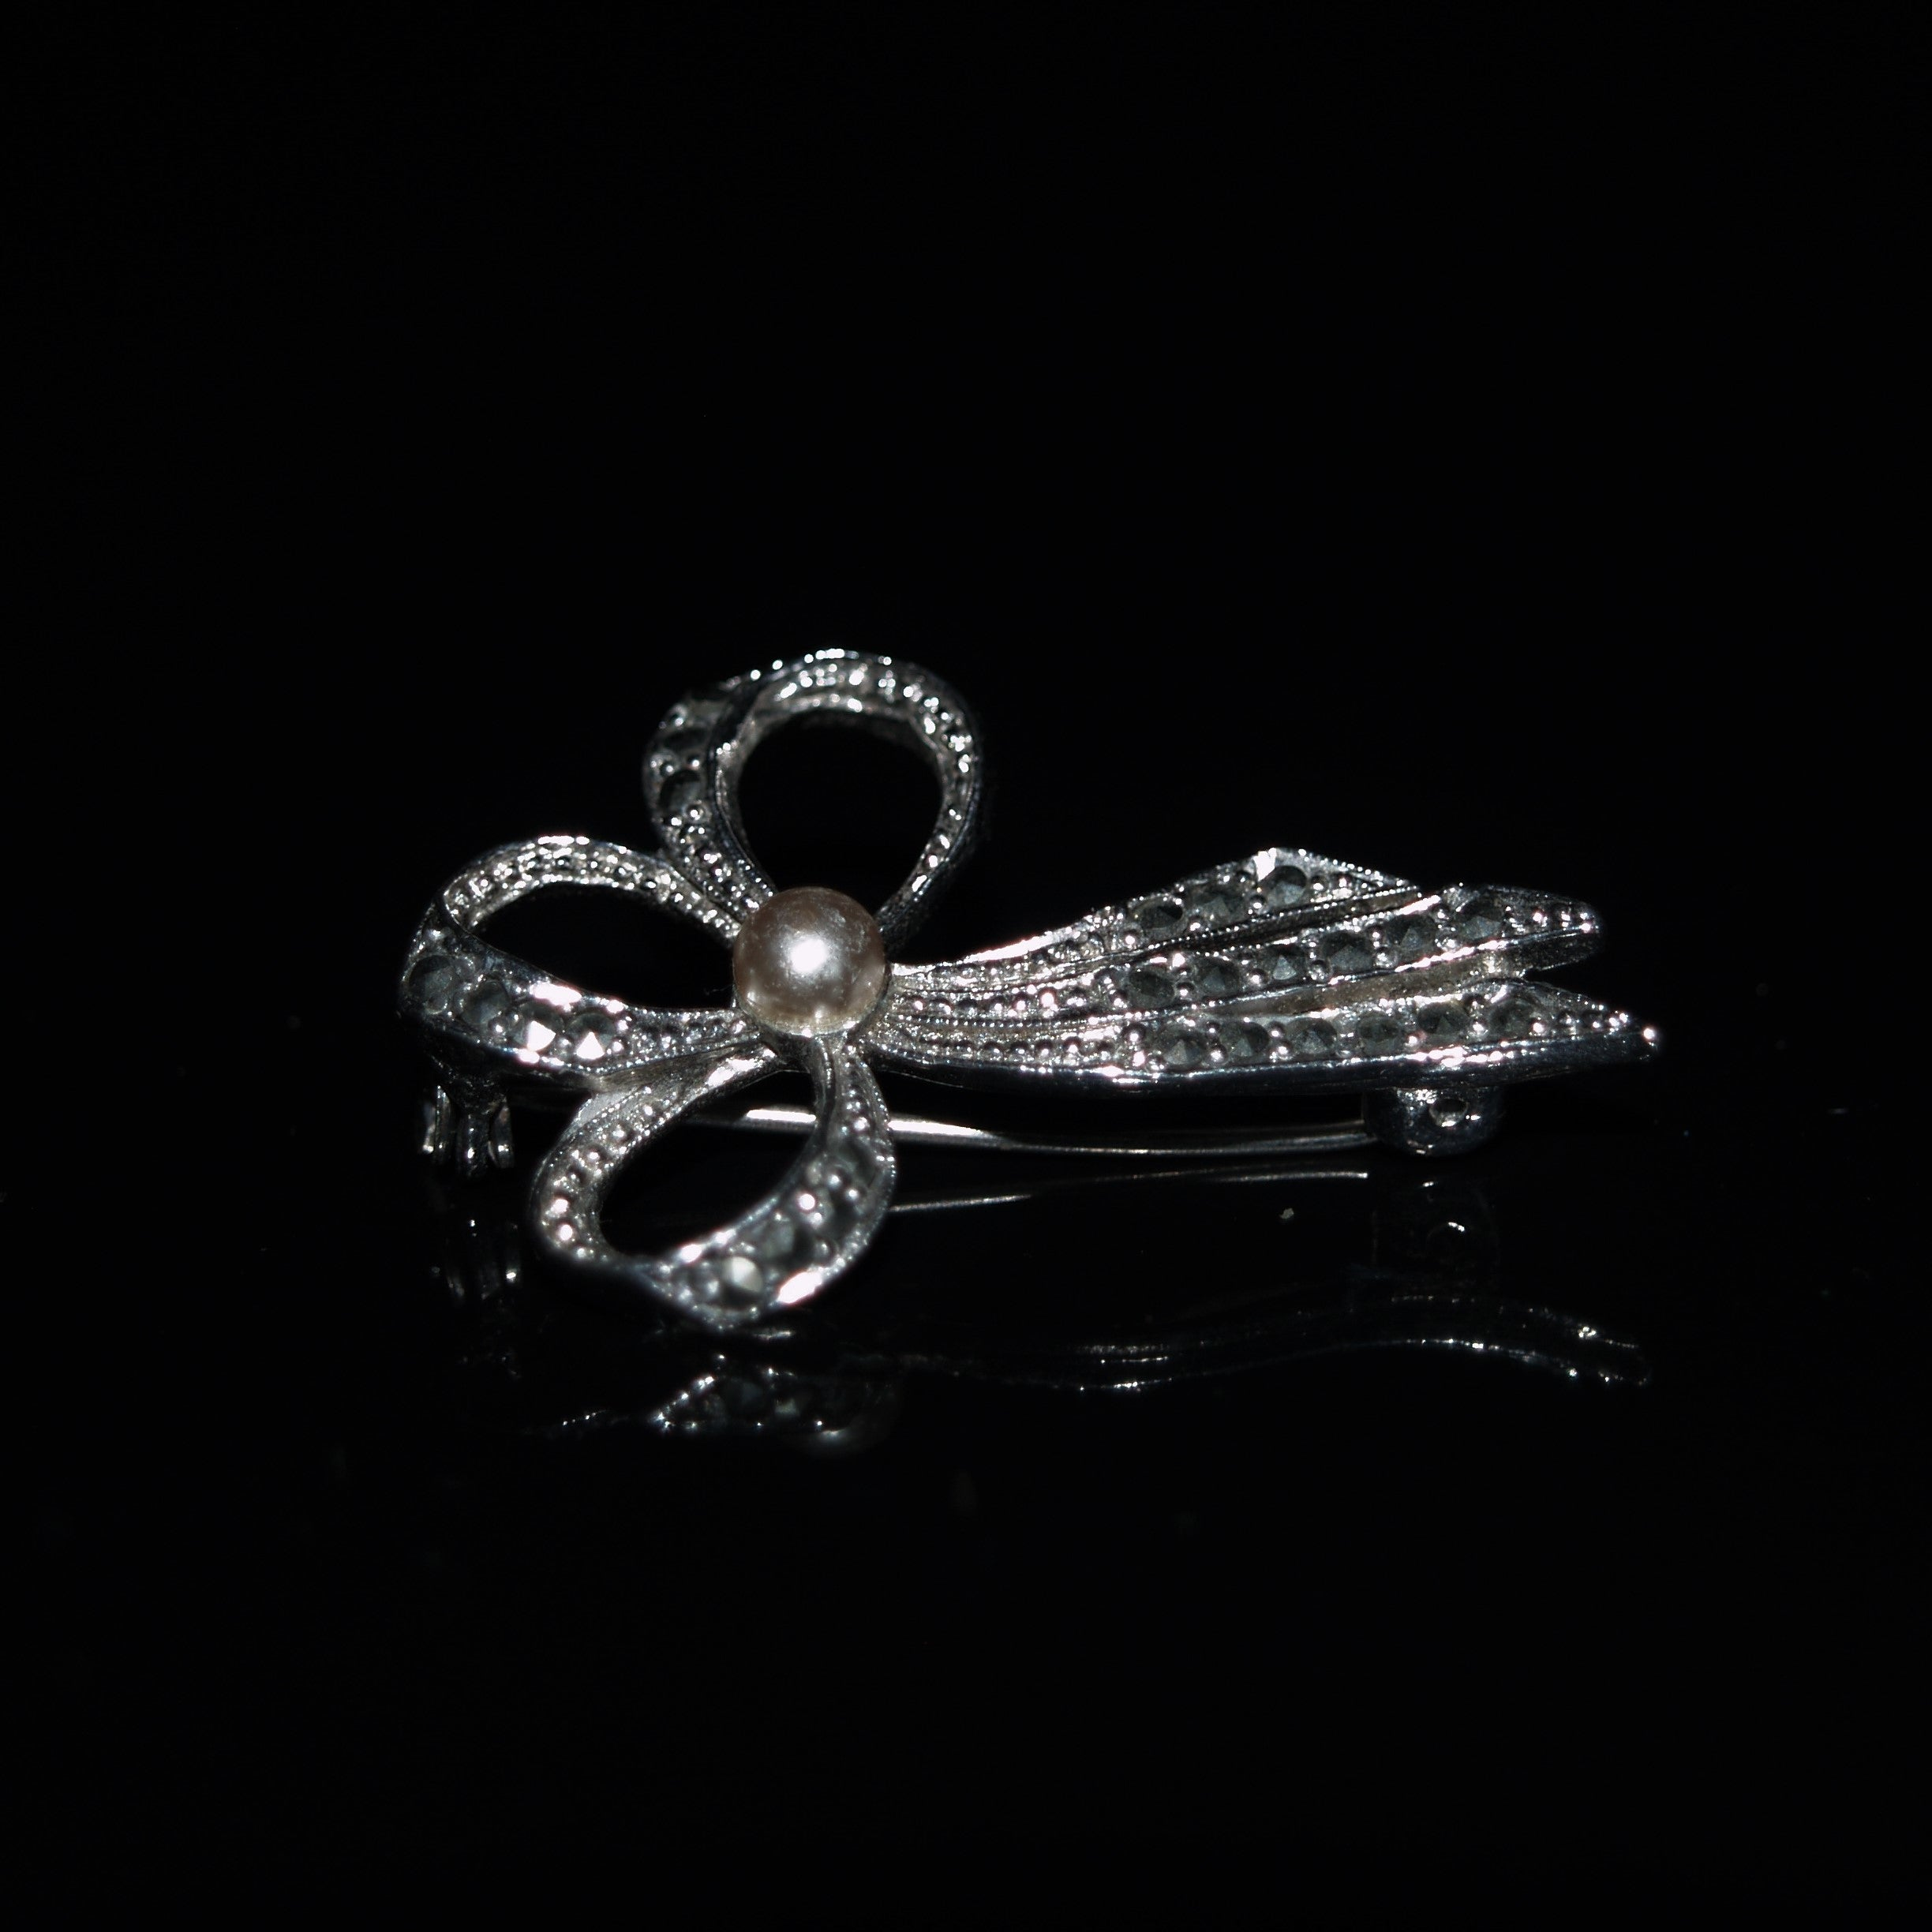 Retro Chrome Plated Marcasite & Faux Pearl Bow Brooch.